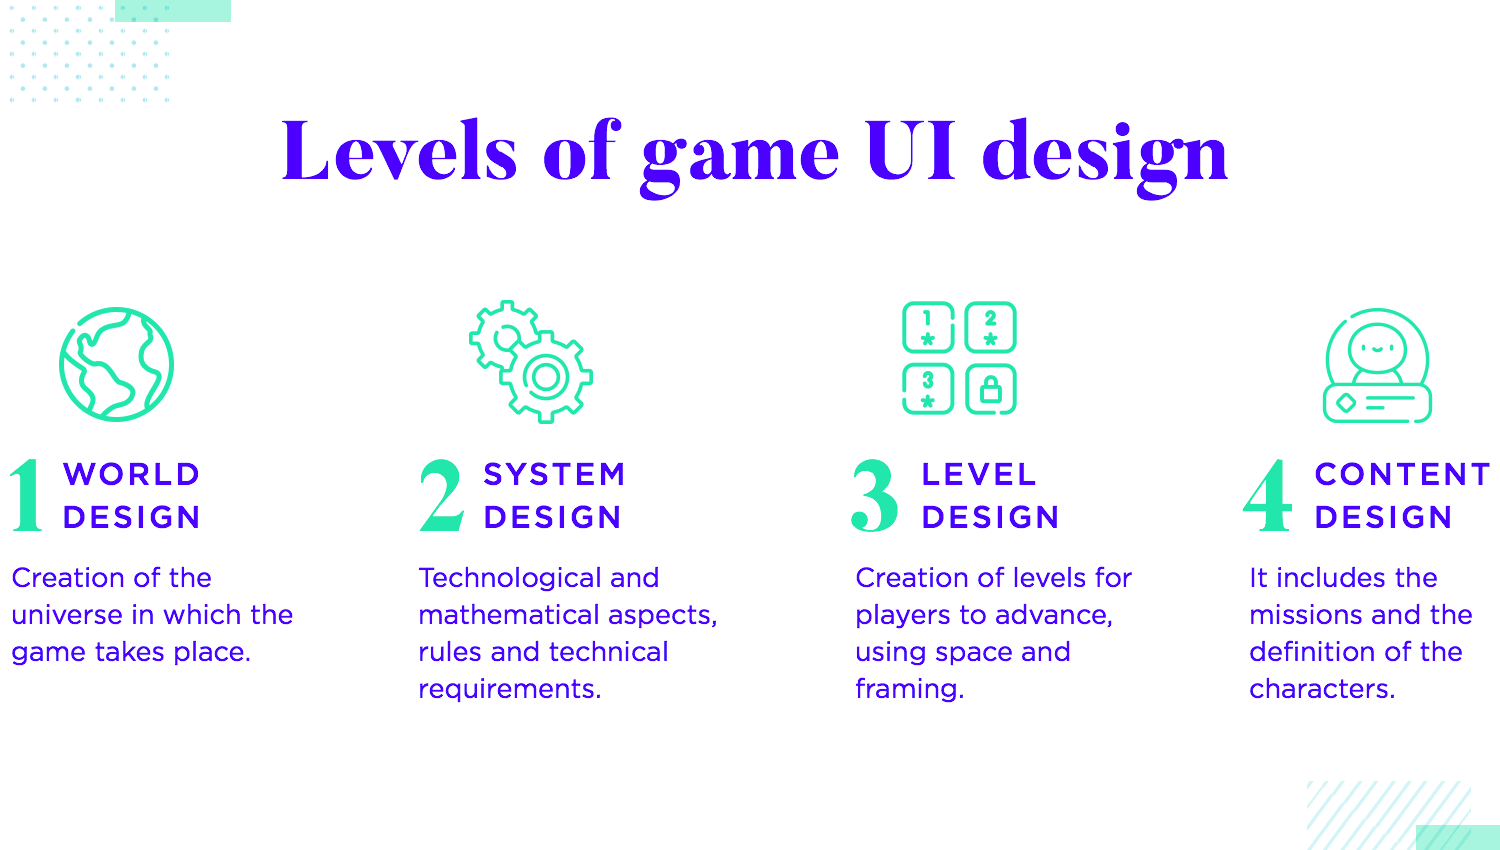 levels of game ui design from worlds to systems